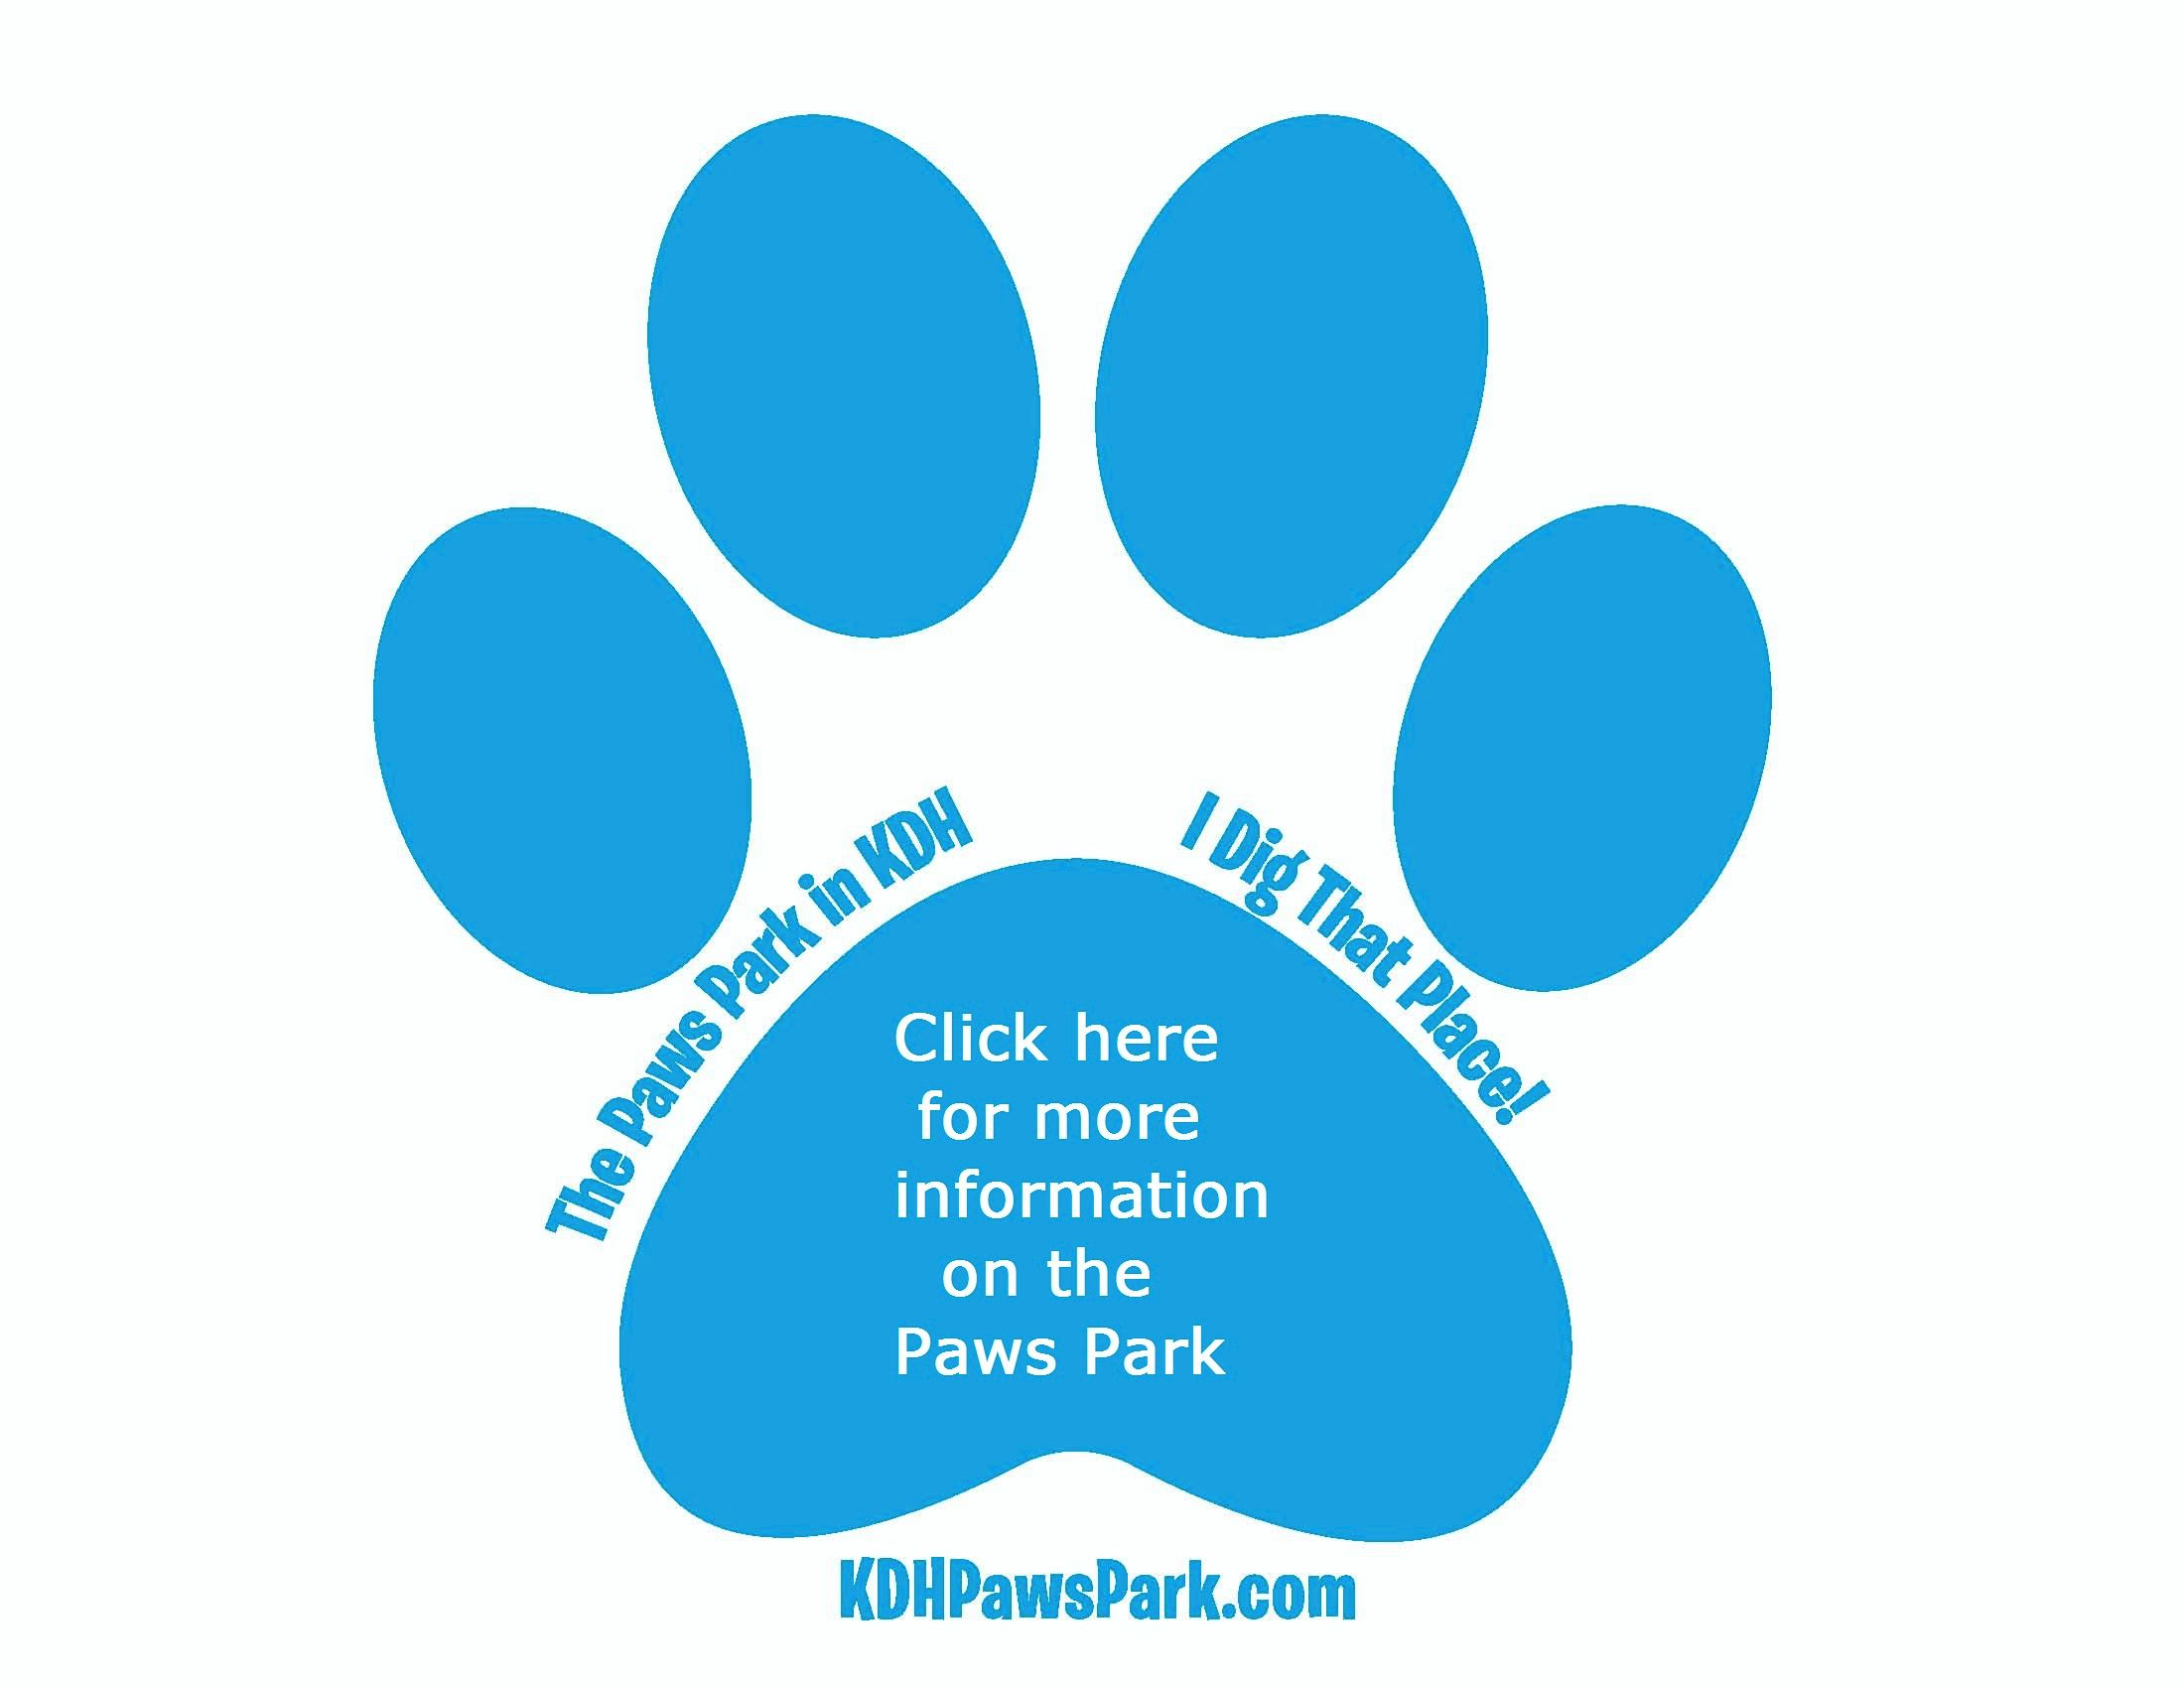 Paws Park Link Click Here